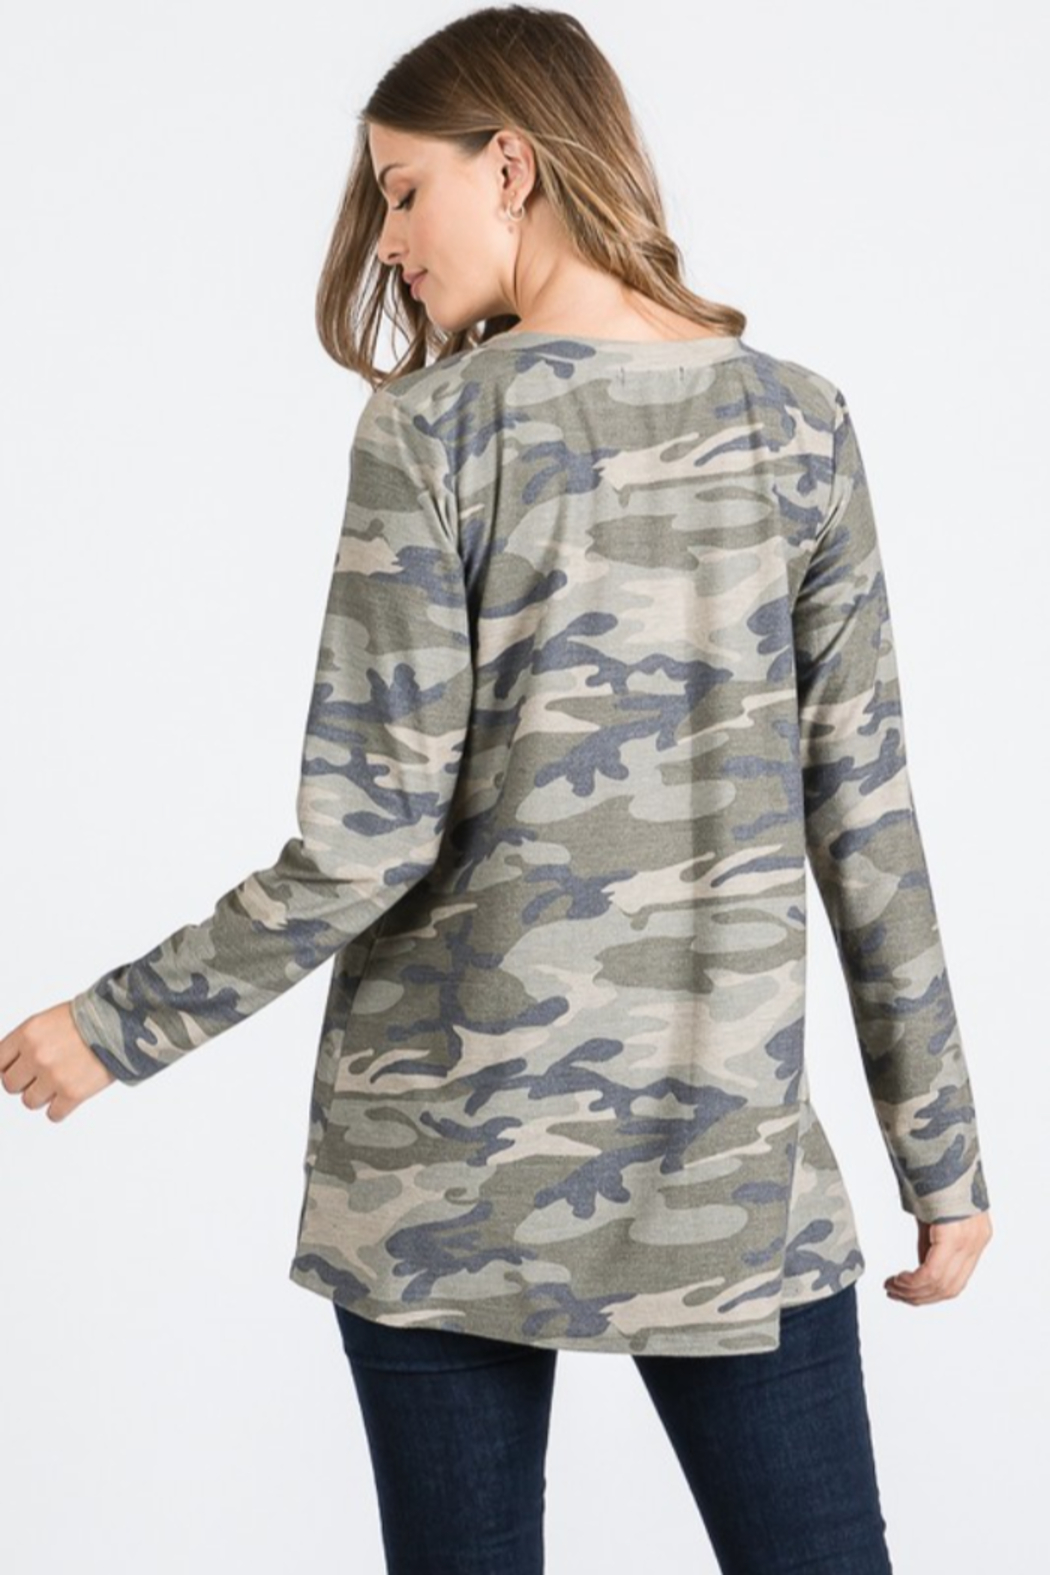 Heimish Caged V Neck Camo Top - Front Full Image